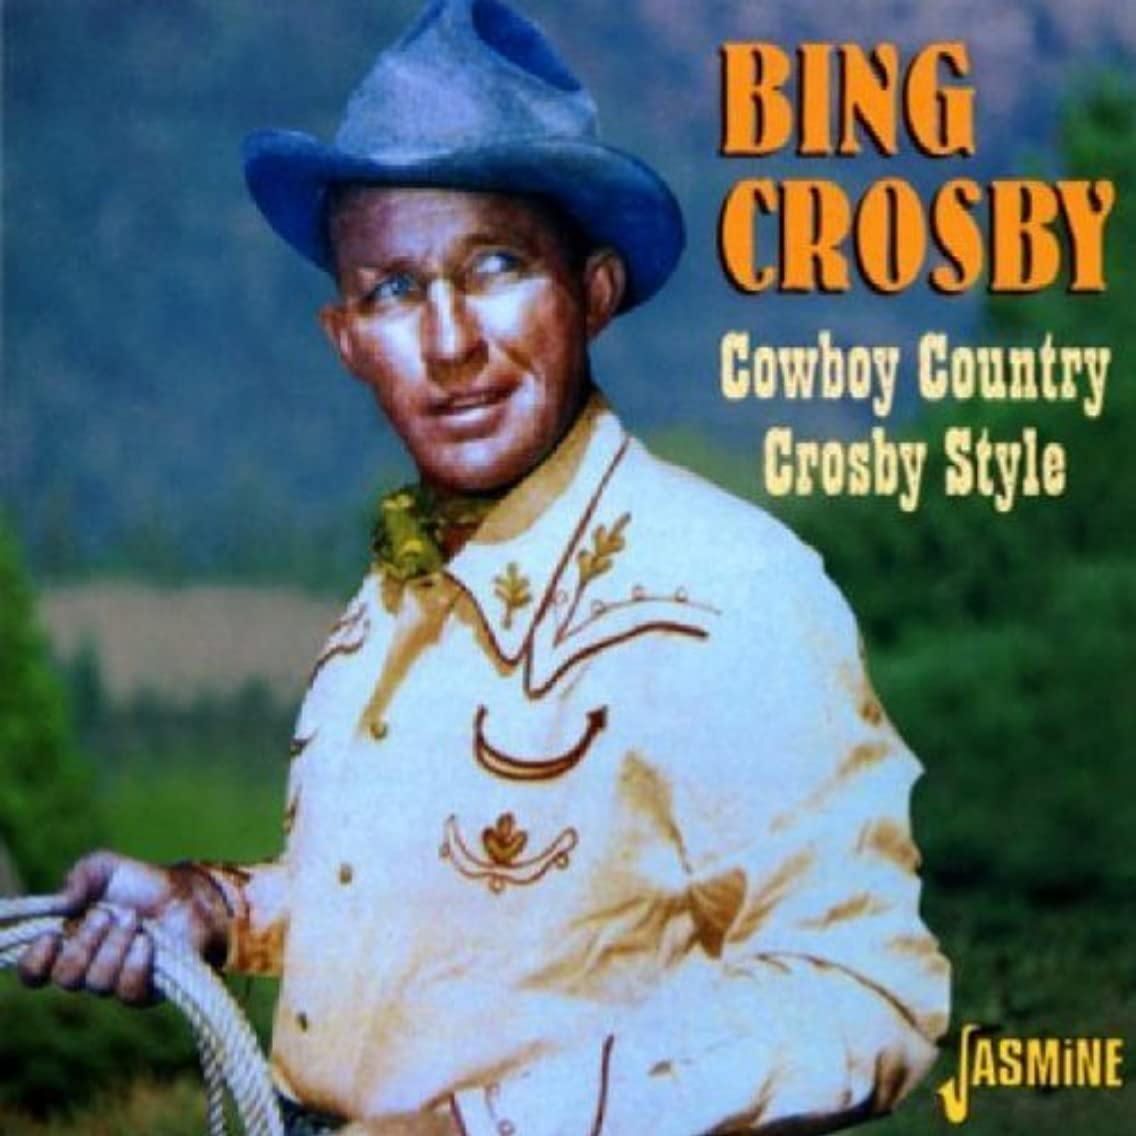 Cowboy Country Crosby Style [ORIGINAL RECORDINGS REMASTERED] by Bing Crosby (2004-04-05)